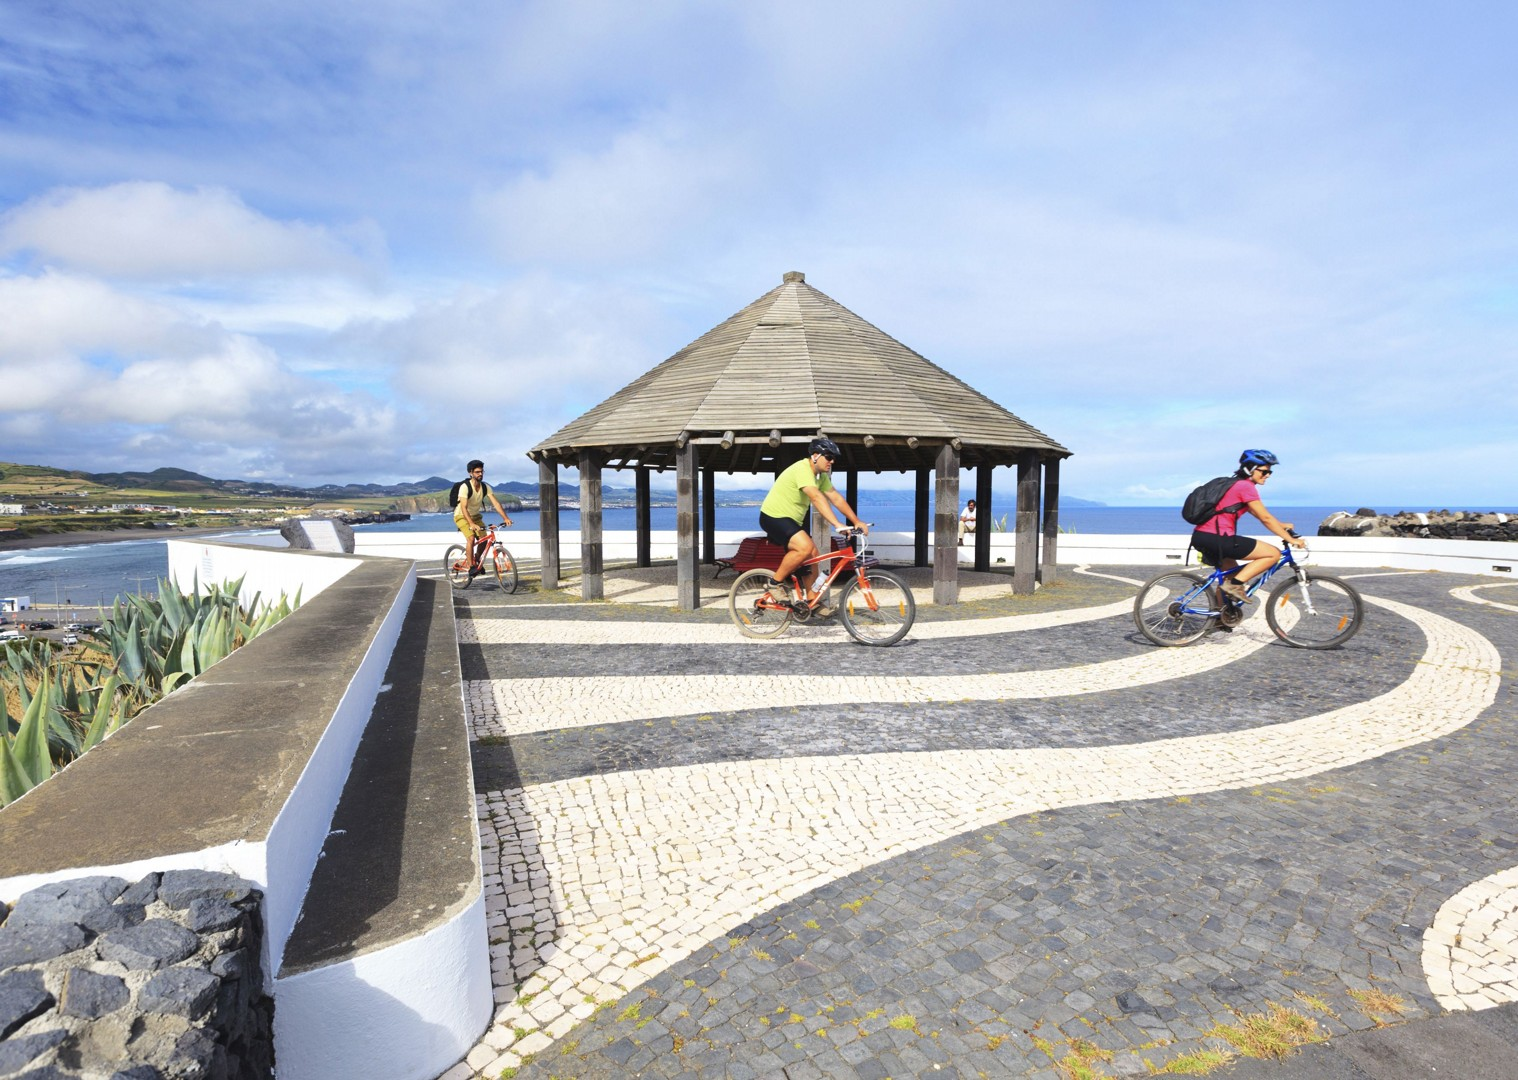 gorreana-tea-plantation-self-guided-cycling-holiday.jpg - The Azores - Islands and Volcanoes - Self-Guided Leisure Cycling Holiday - Leisure Cycling